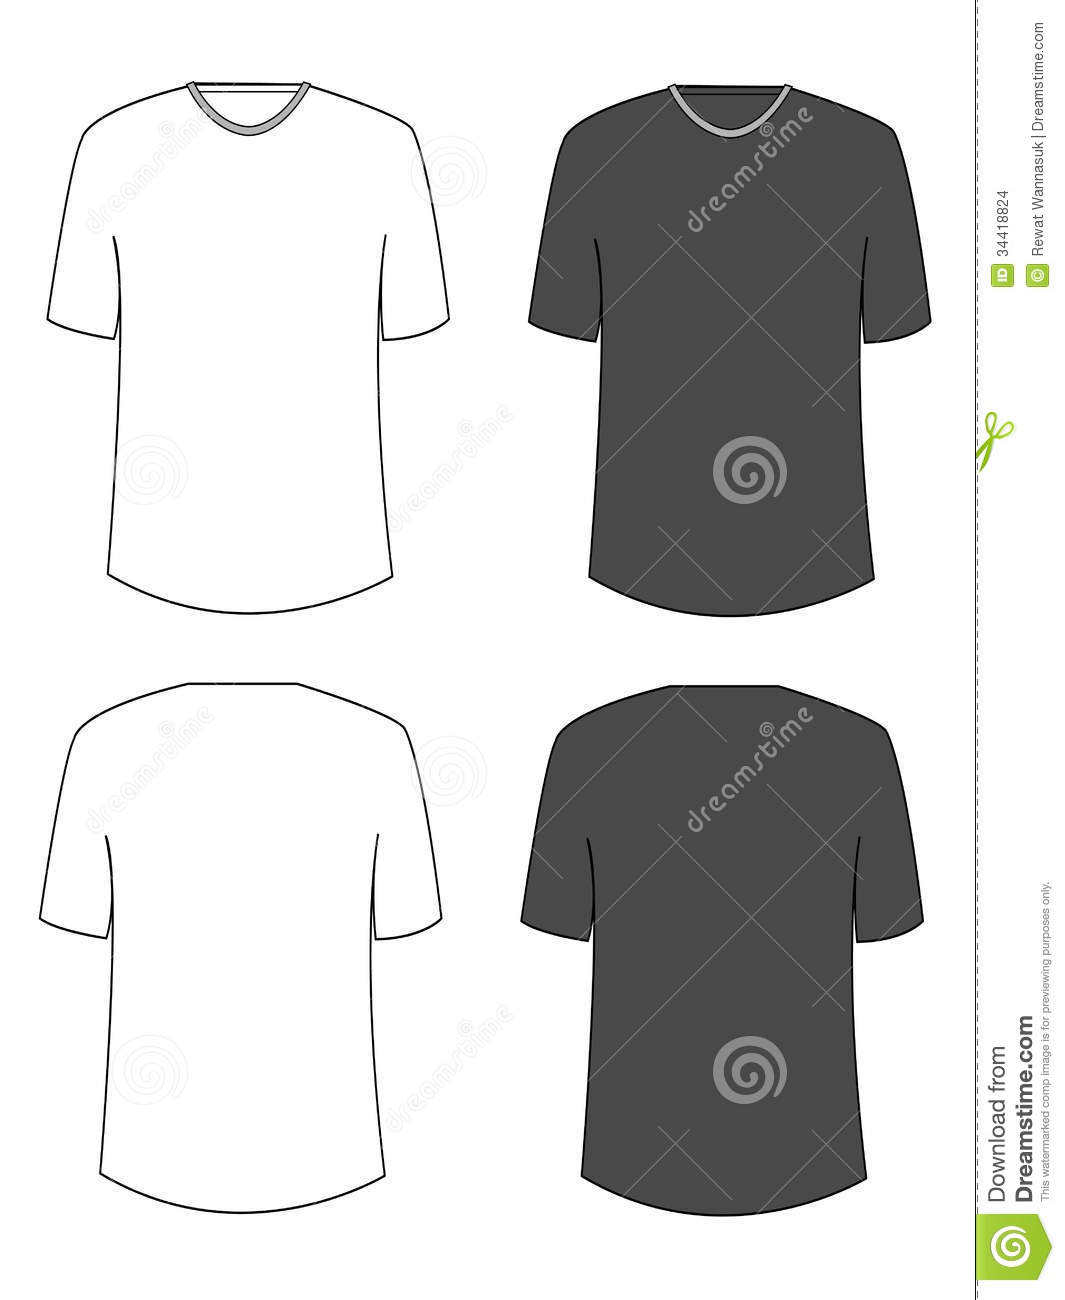 Design t shirt easy - Blank Tshirt Stock Images